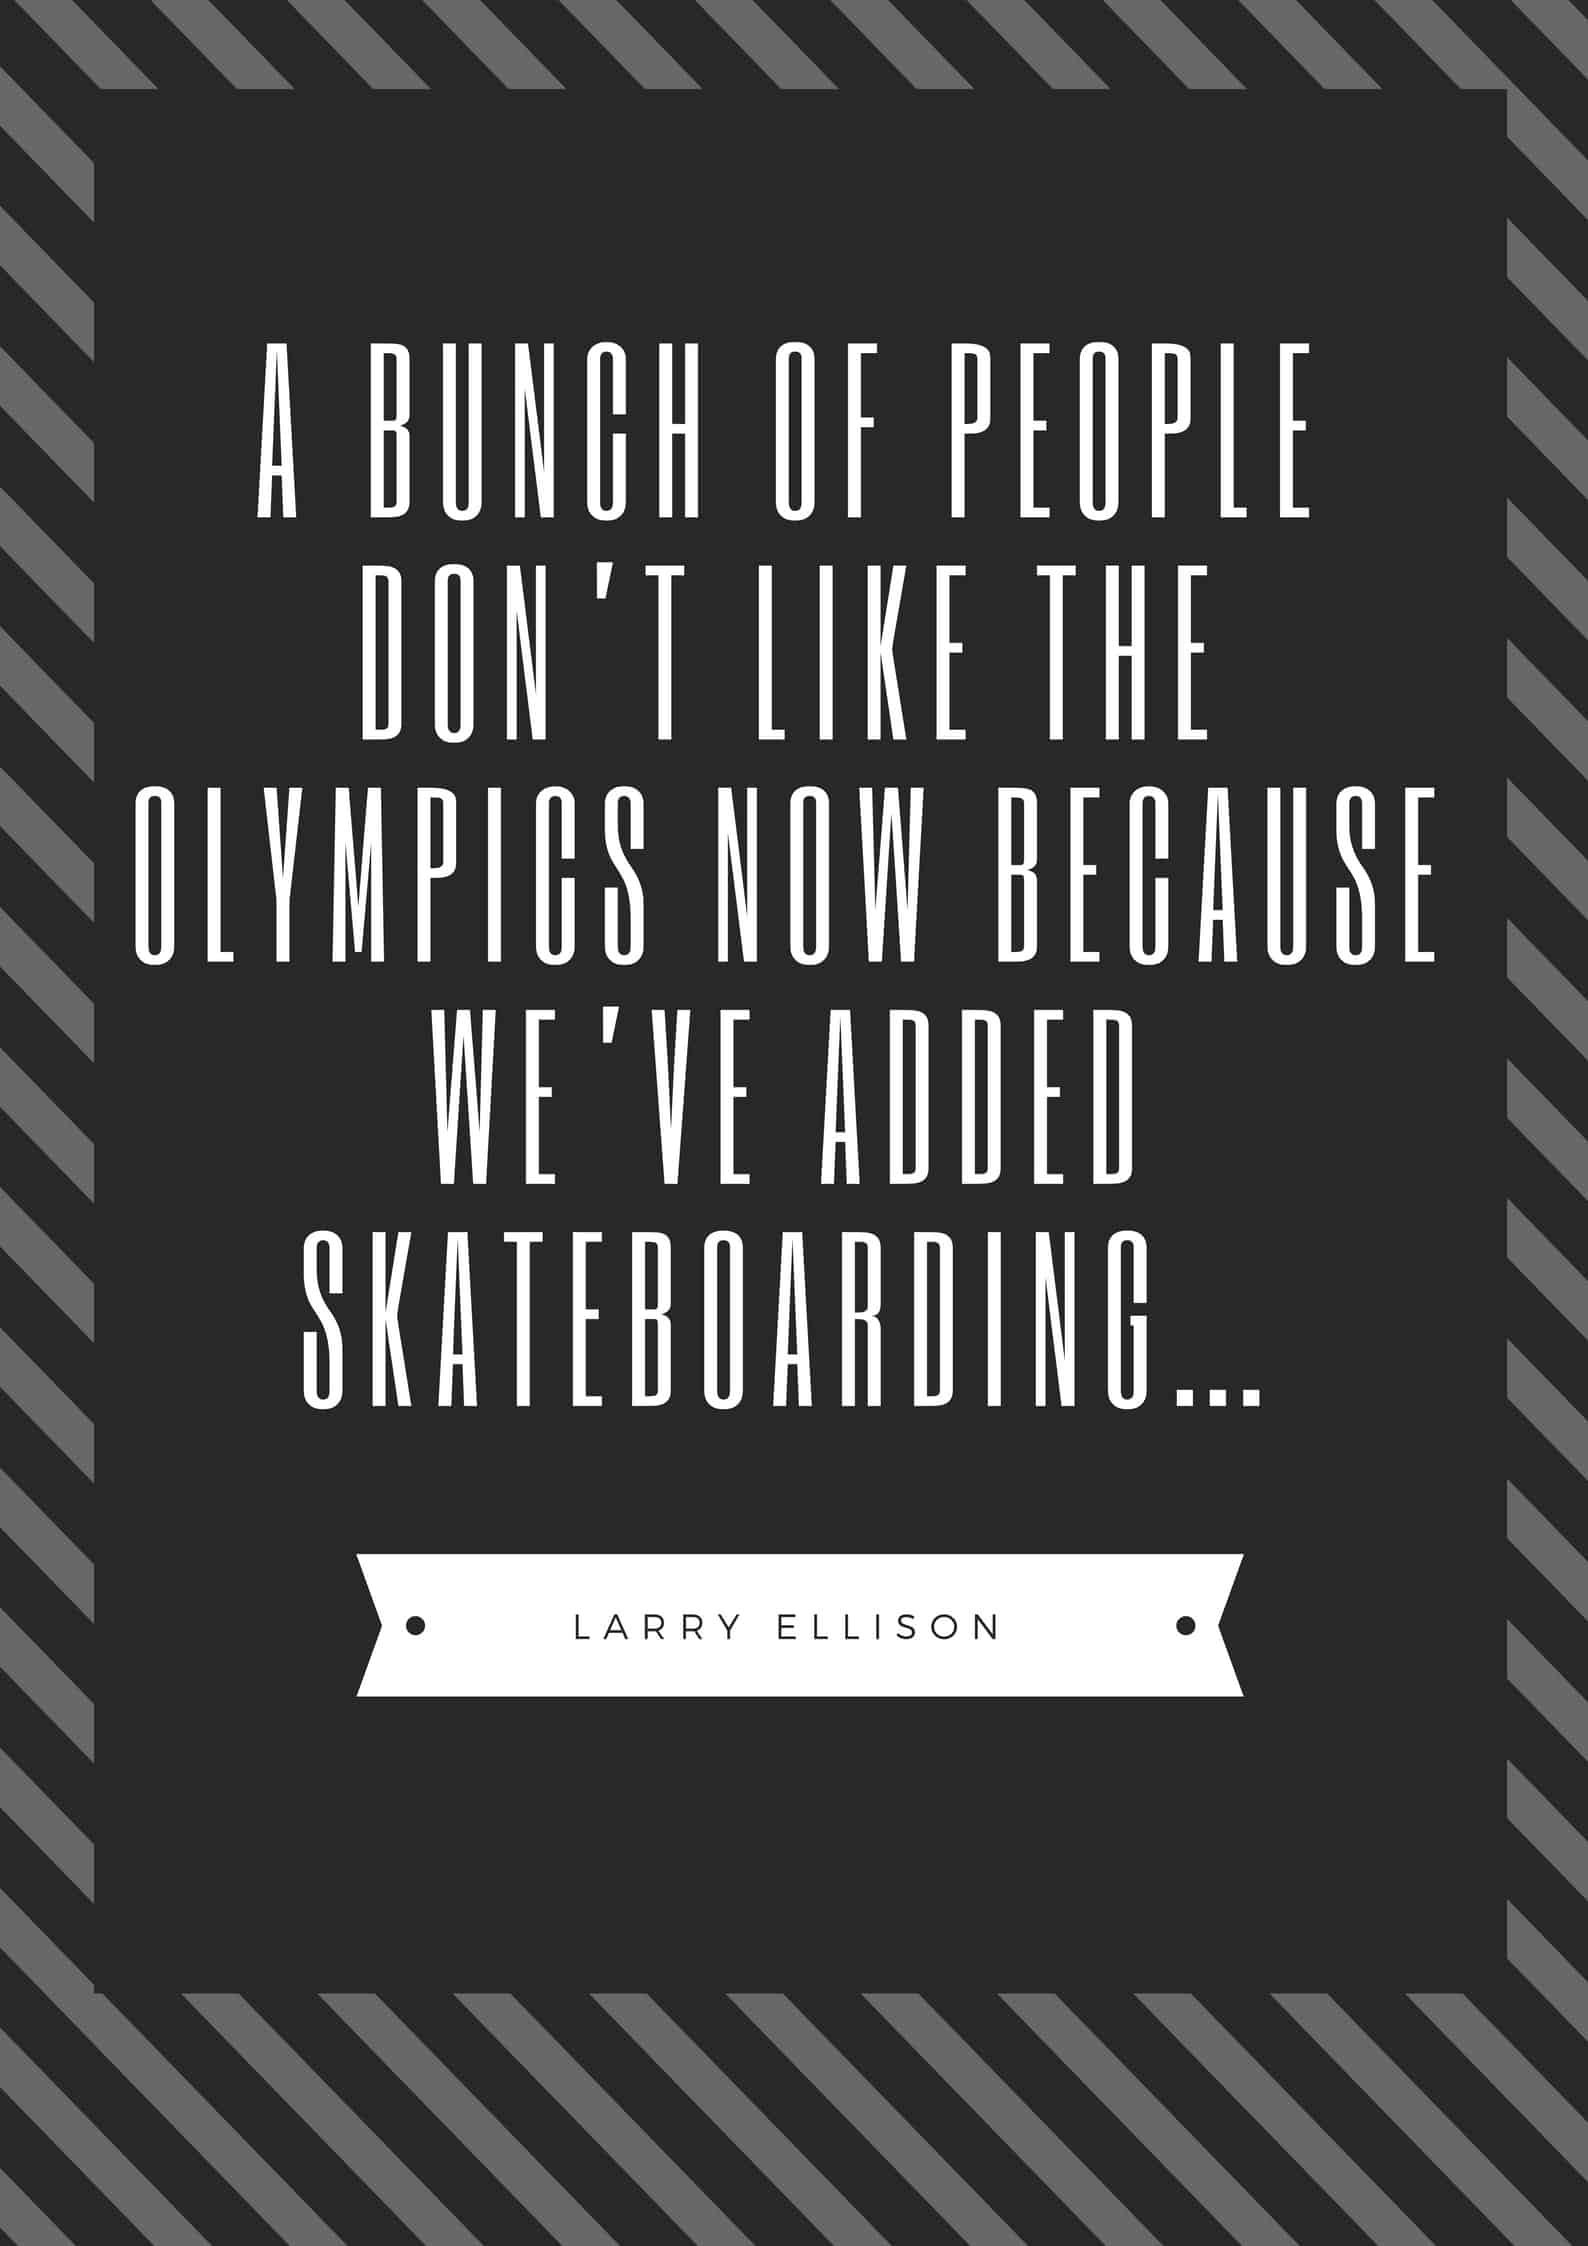 A BUNCH OF PEOPLE DON'T LIKE THE OLYMPICS NOW BECAUSE WE'VE ADDED SKATEBOARDING…